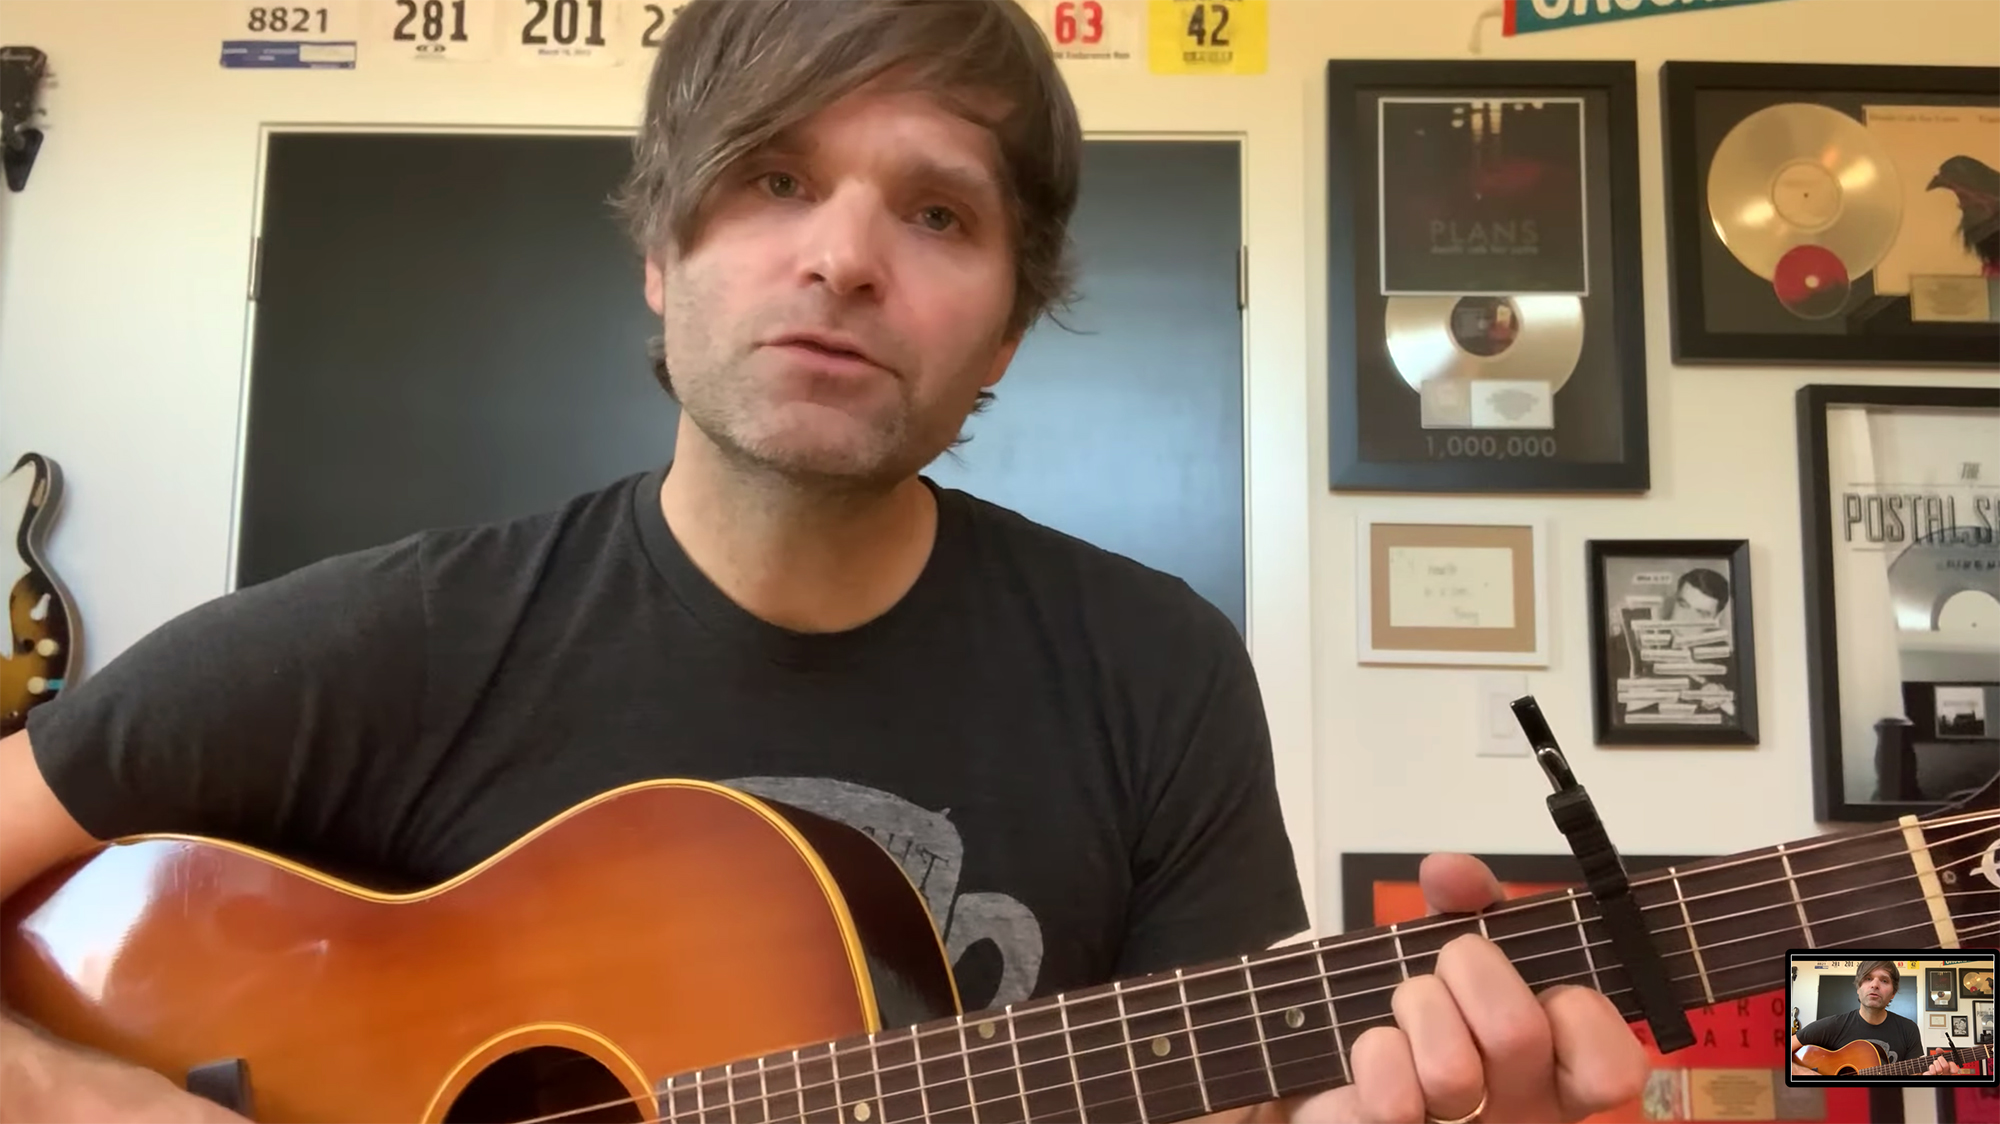 Death Cab for Cutie's Ben Gibbard Addresses COVID-19 on New Song 'Life in Quarantine' - EpicNews